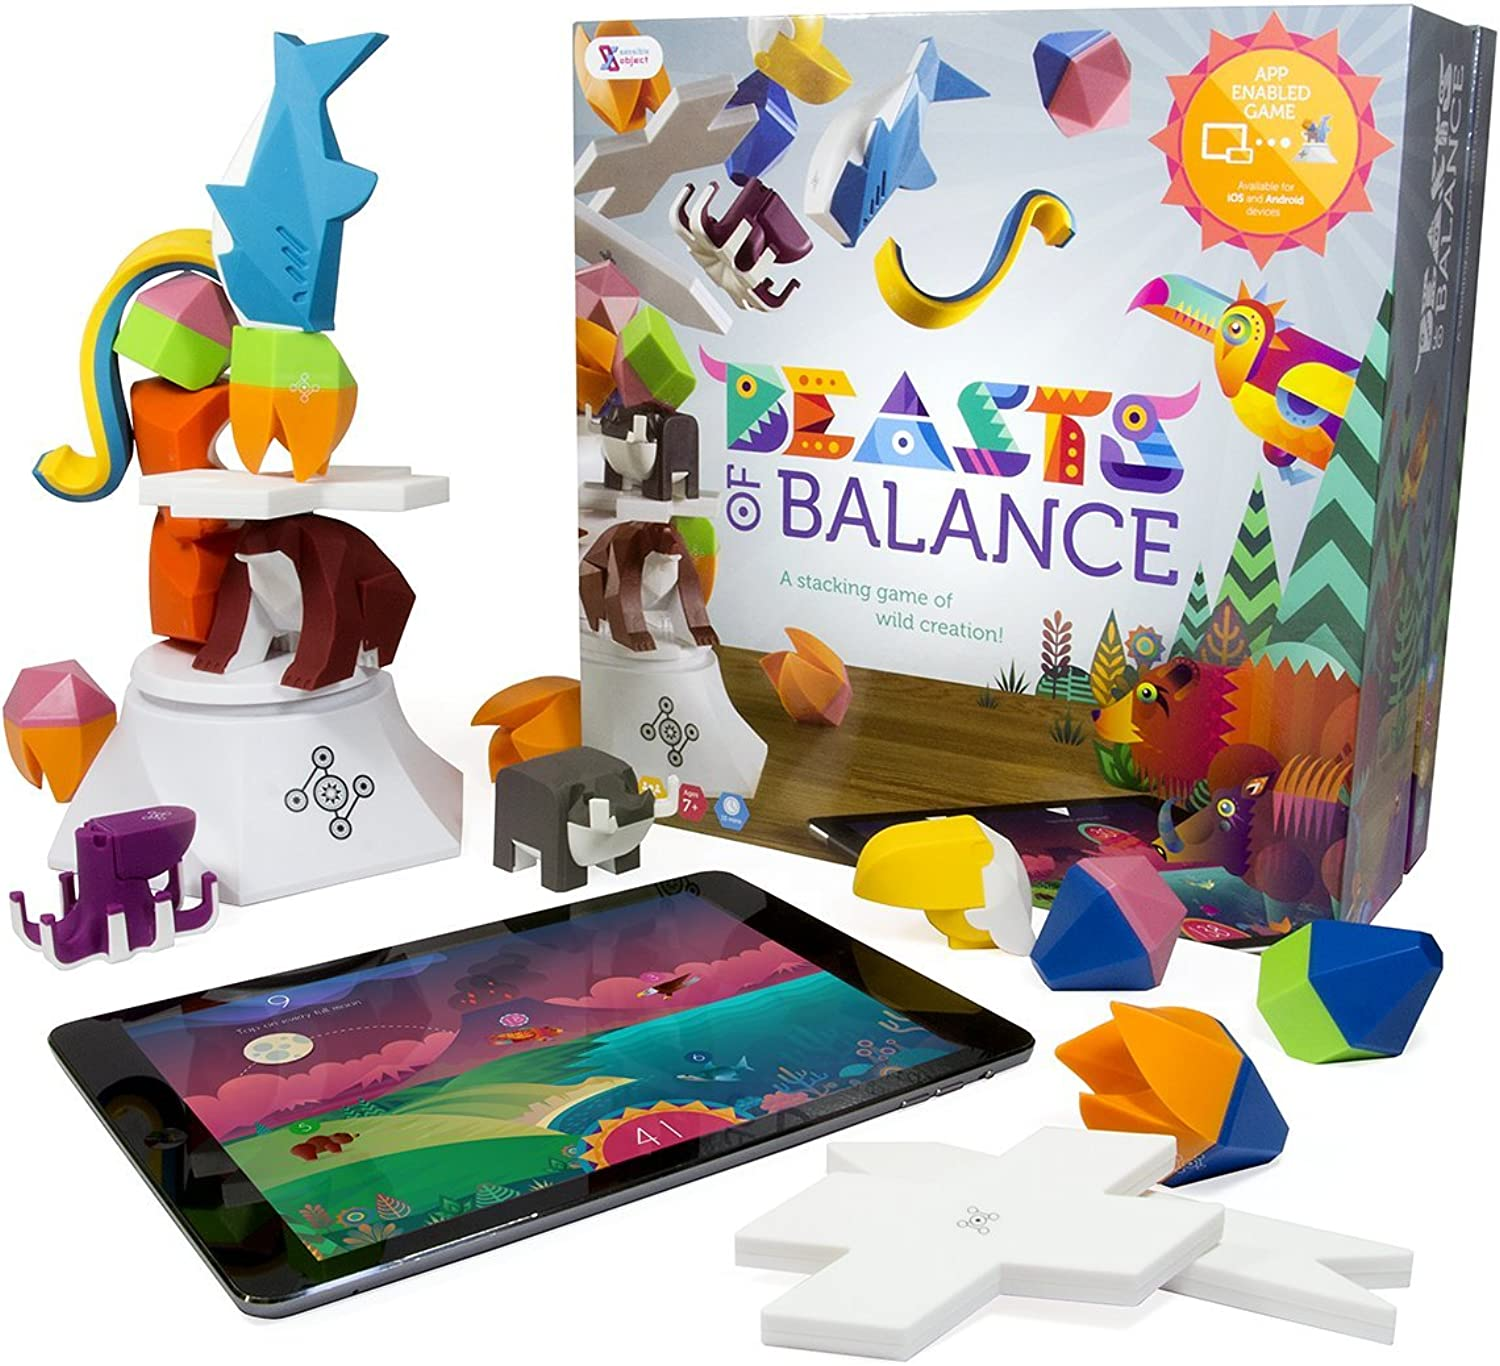 Beasts of Balance  A Digital Tabletop Hybrid Family Stacking Game For Ages 7+ (BOBCORWW1 GEN)